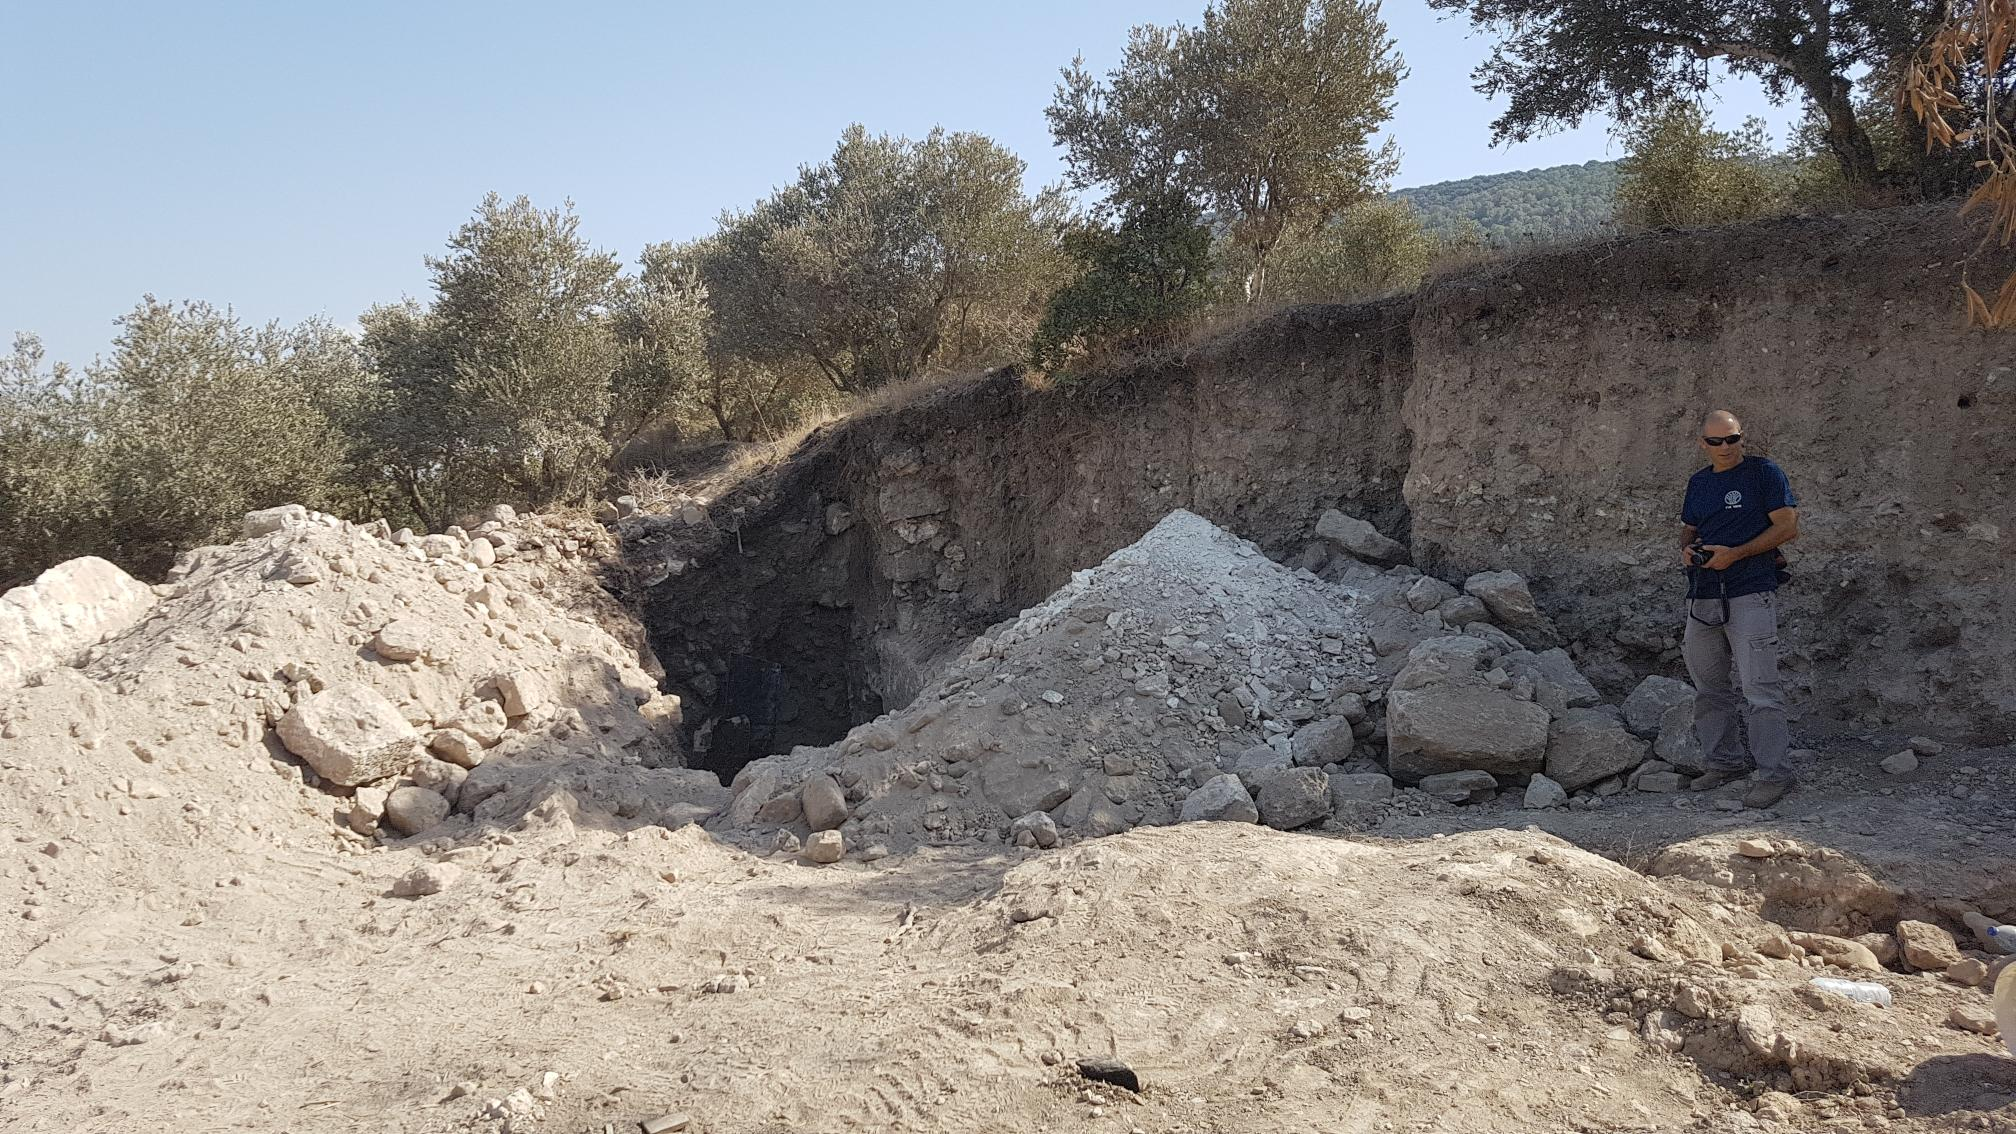 Destruction caused by looters using a JCB in Khirbet Dvora.